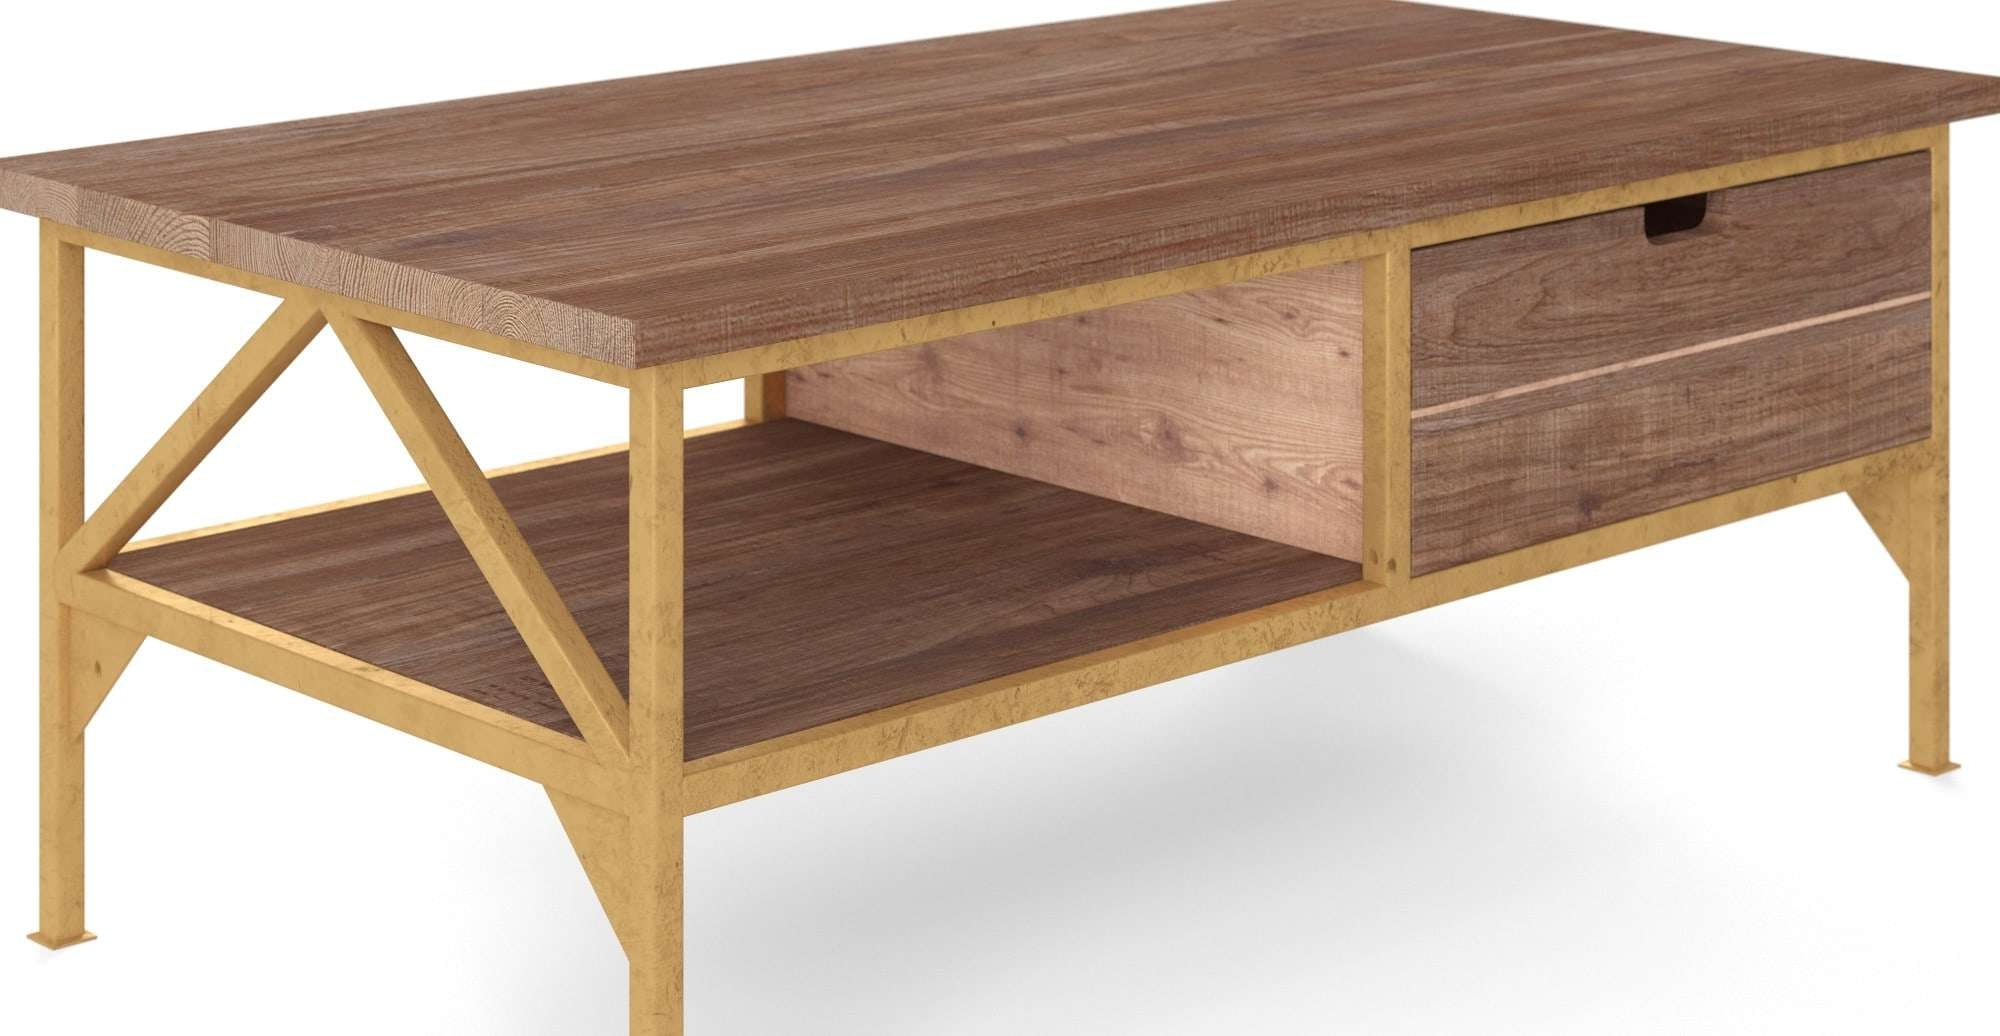 Most Up To Date Pine Coffee Tables With Storage For Coffee Table : Fabulous Pine Coffee Table Round Coffee Table With (View 15 of 20)